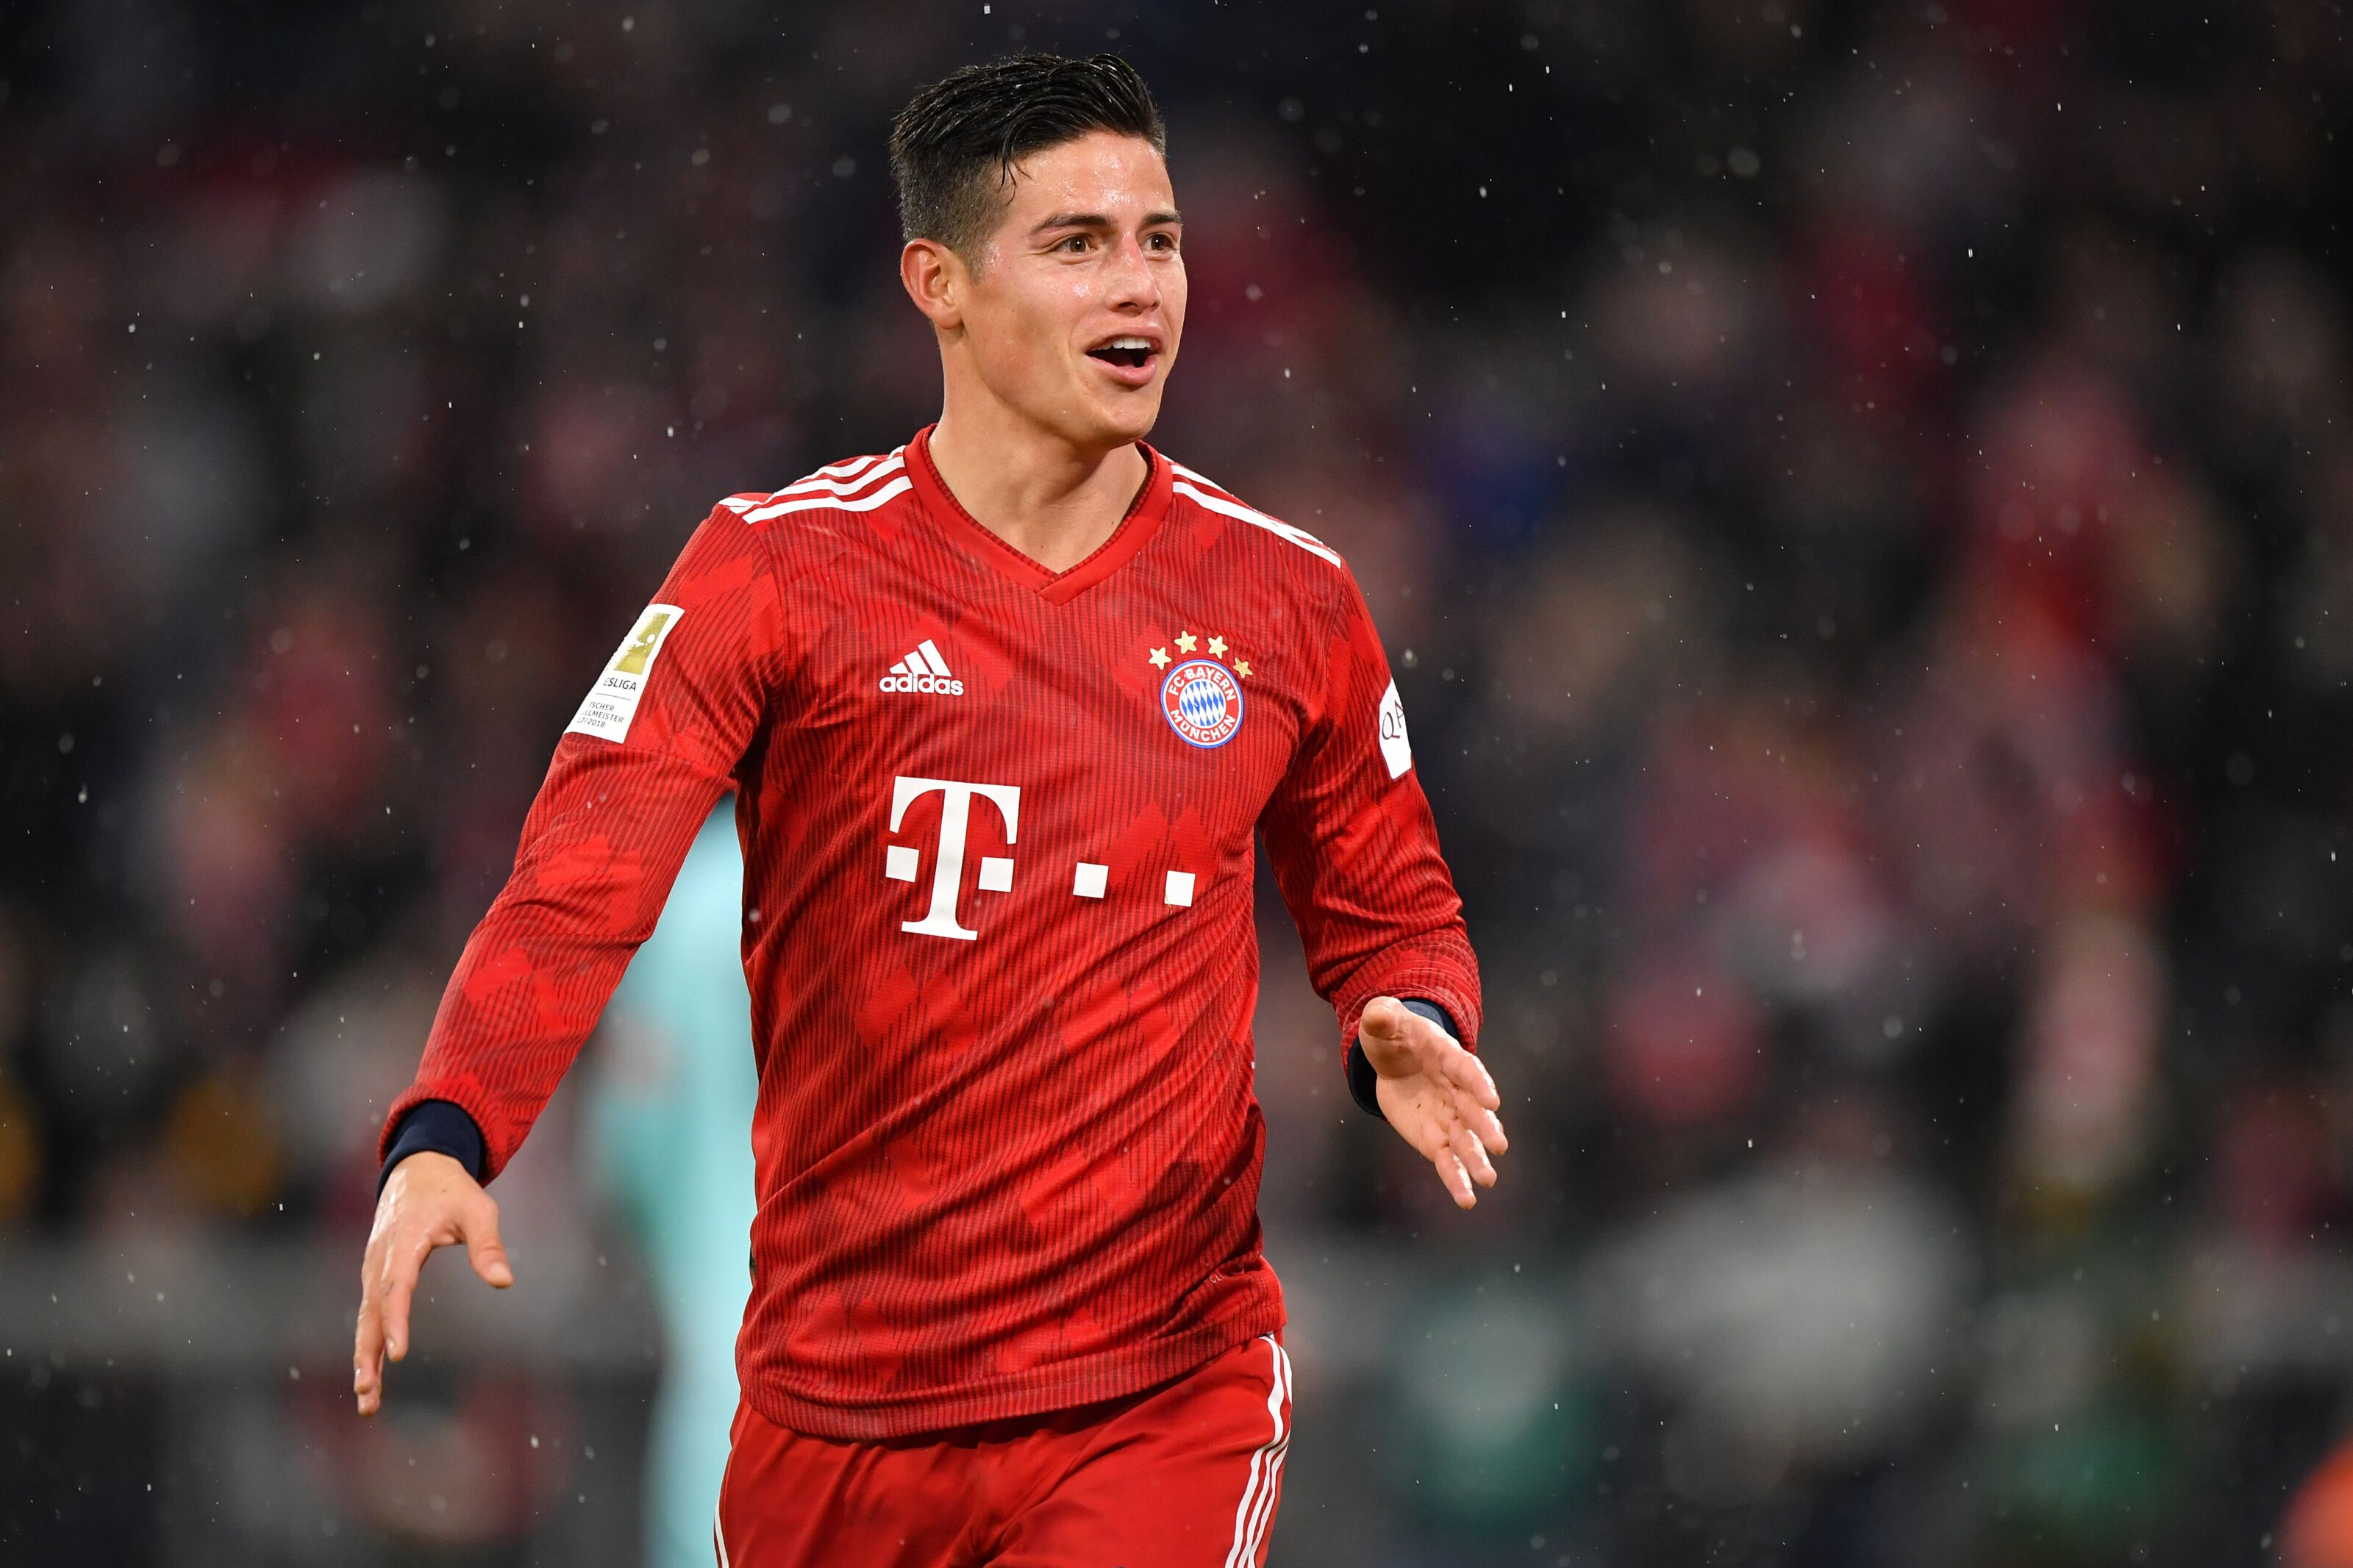 Bayern Munich's James Rodriguez remains tight-lipped about his future